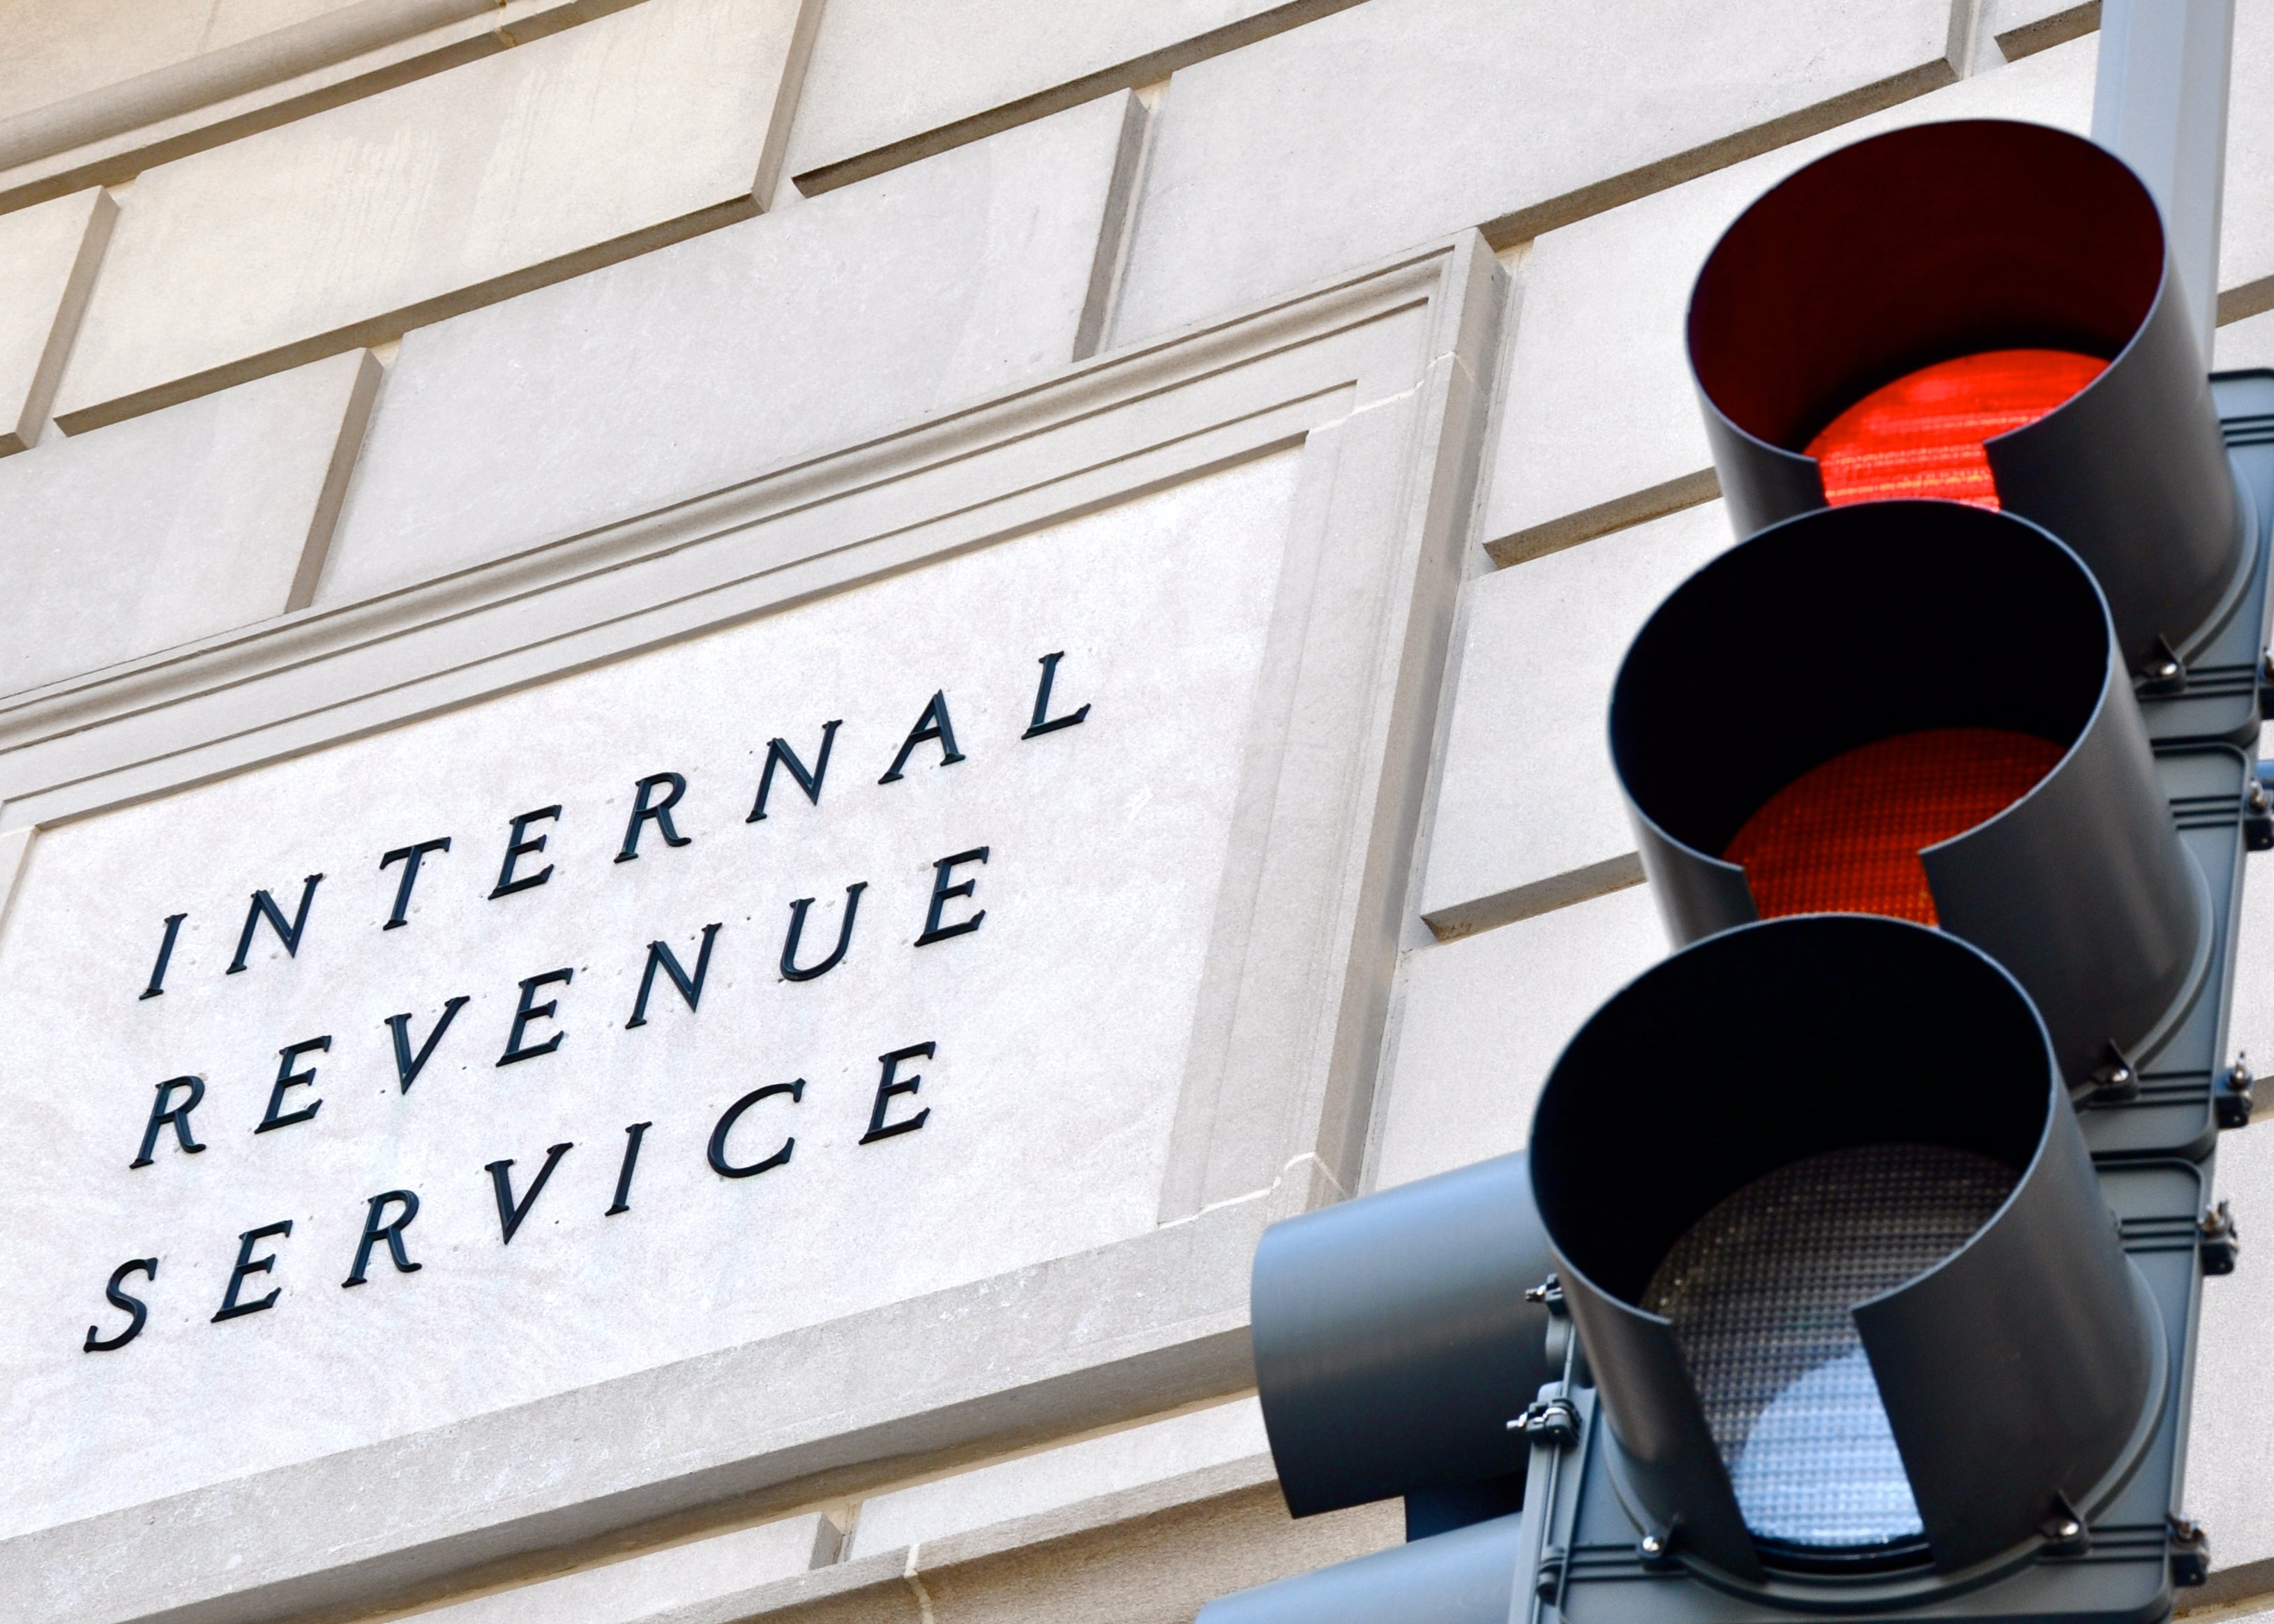 Attention Retirees: You Need to Know This New IRS Rule About Required Minimum Distributions | The Motley Fool